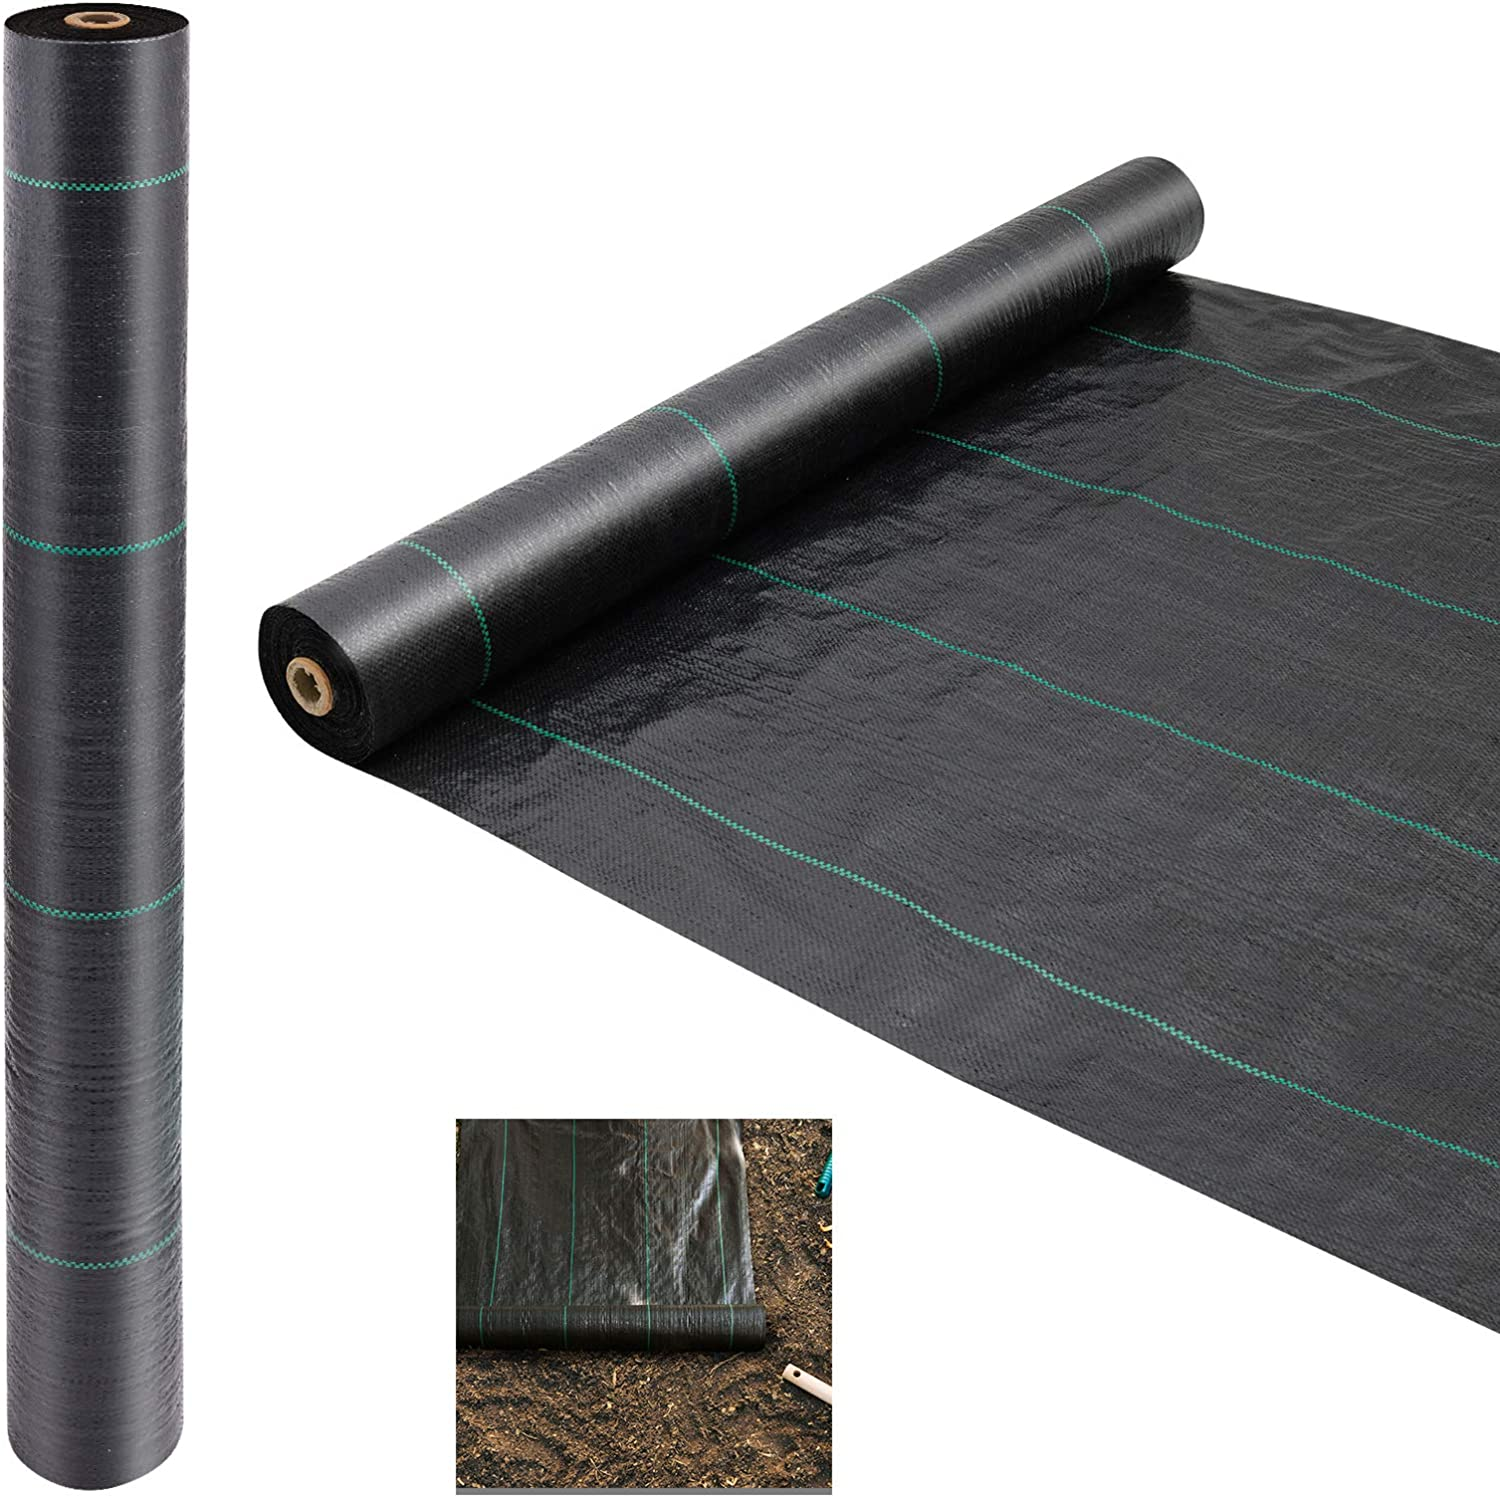 Newtion 3ft x 150ftWeed Barrier Fabricfor Outdoor Gardens,Cover Garden Weed Barrie Landscape Fabric Gardening Mat,Premium Weed Fabric Garden for Flower Bed, Yard,Garden Stakes